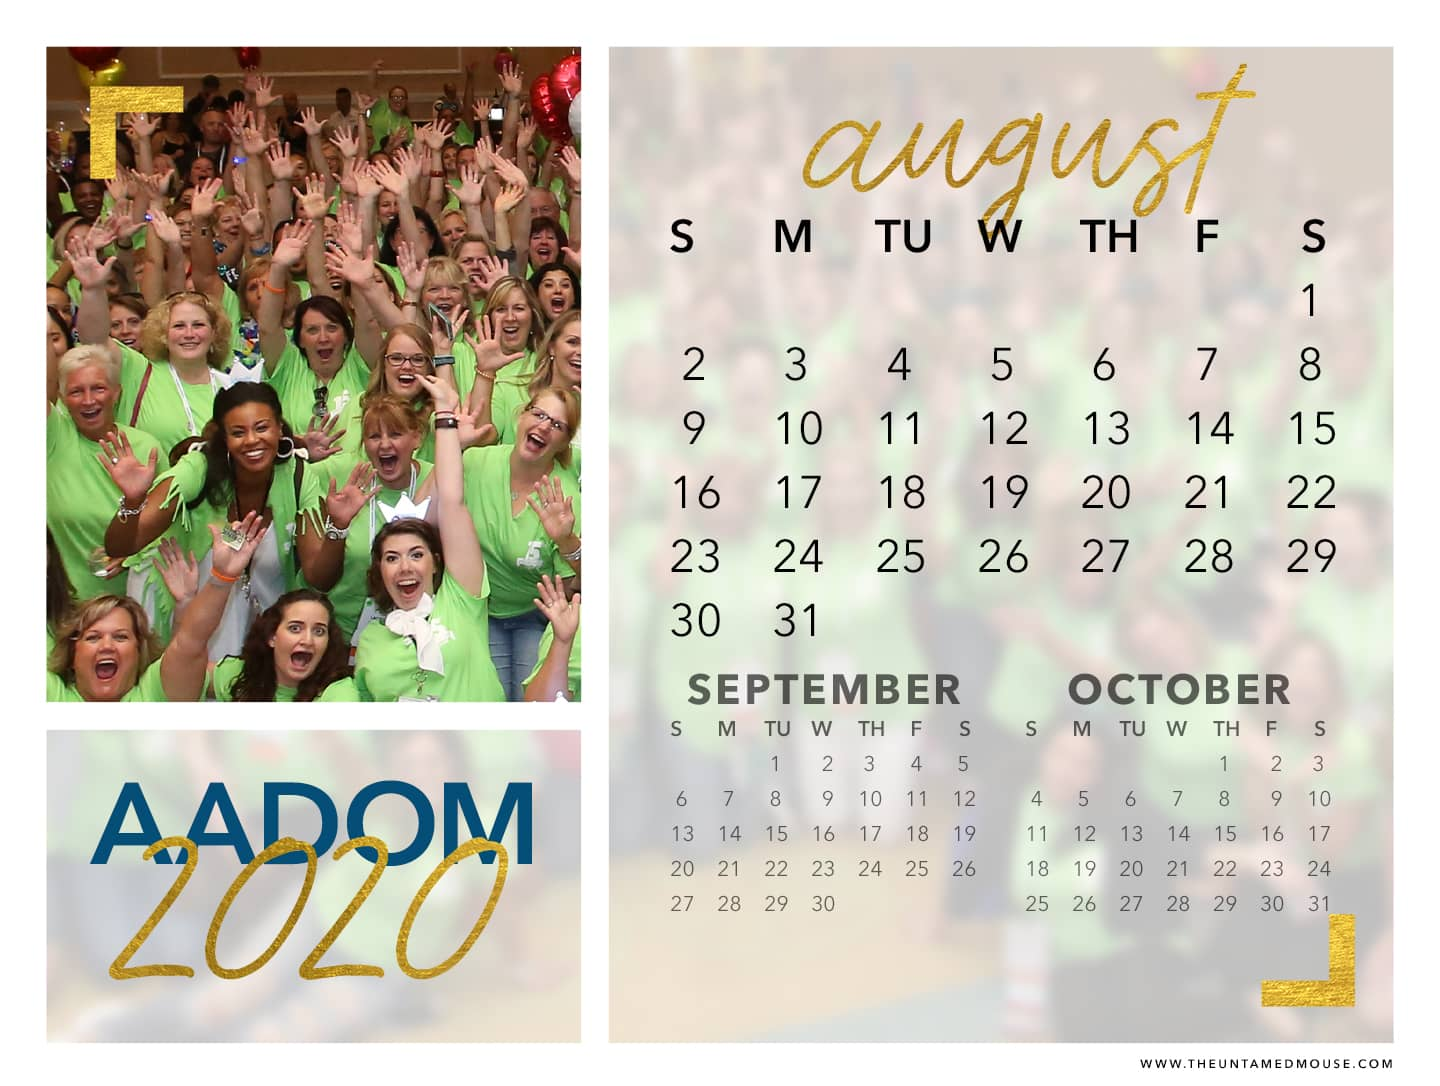 Downloadable August 2020 calendar to remind you to treasure your AADOM tribe.